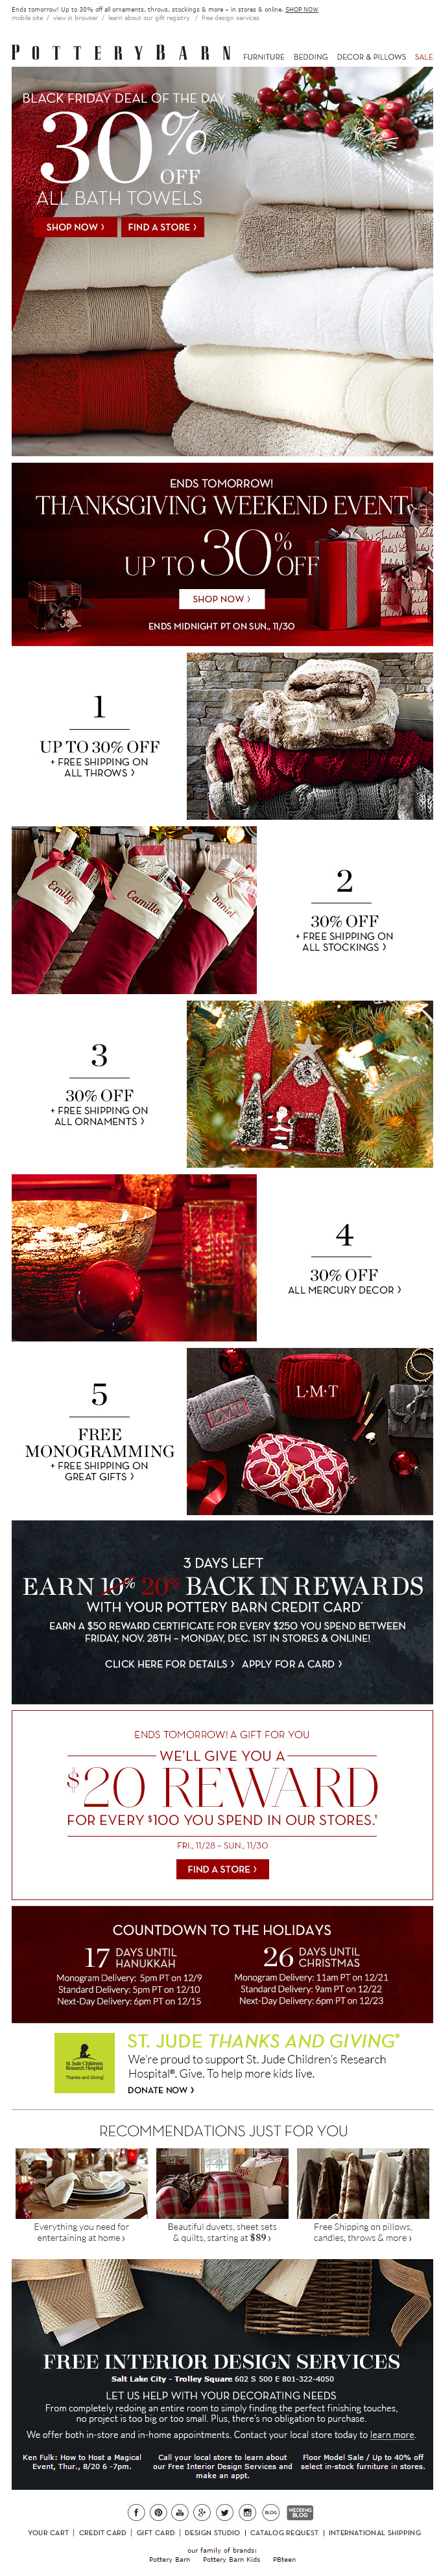 Pottery Barn Thanksgiving email 2014